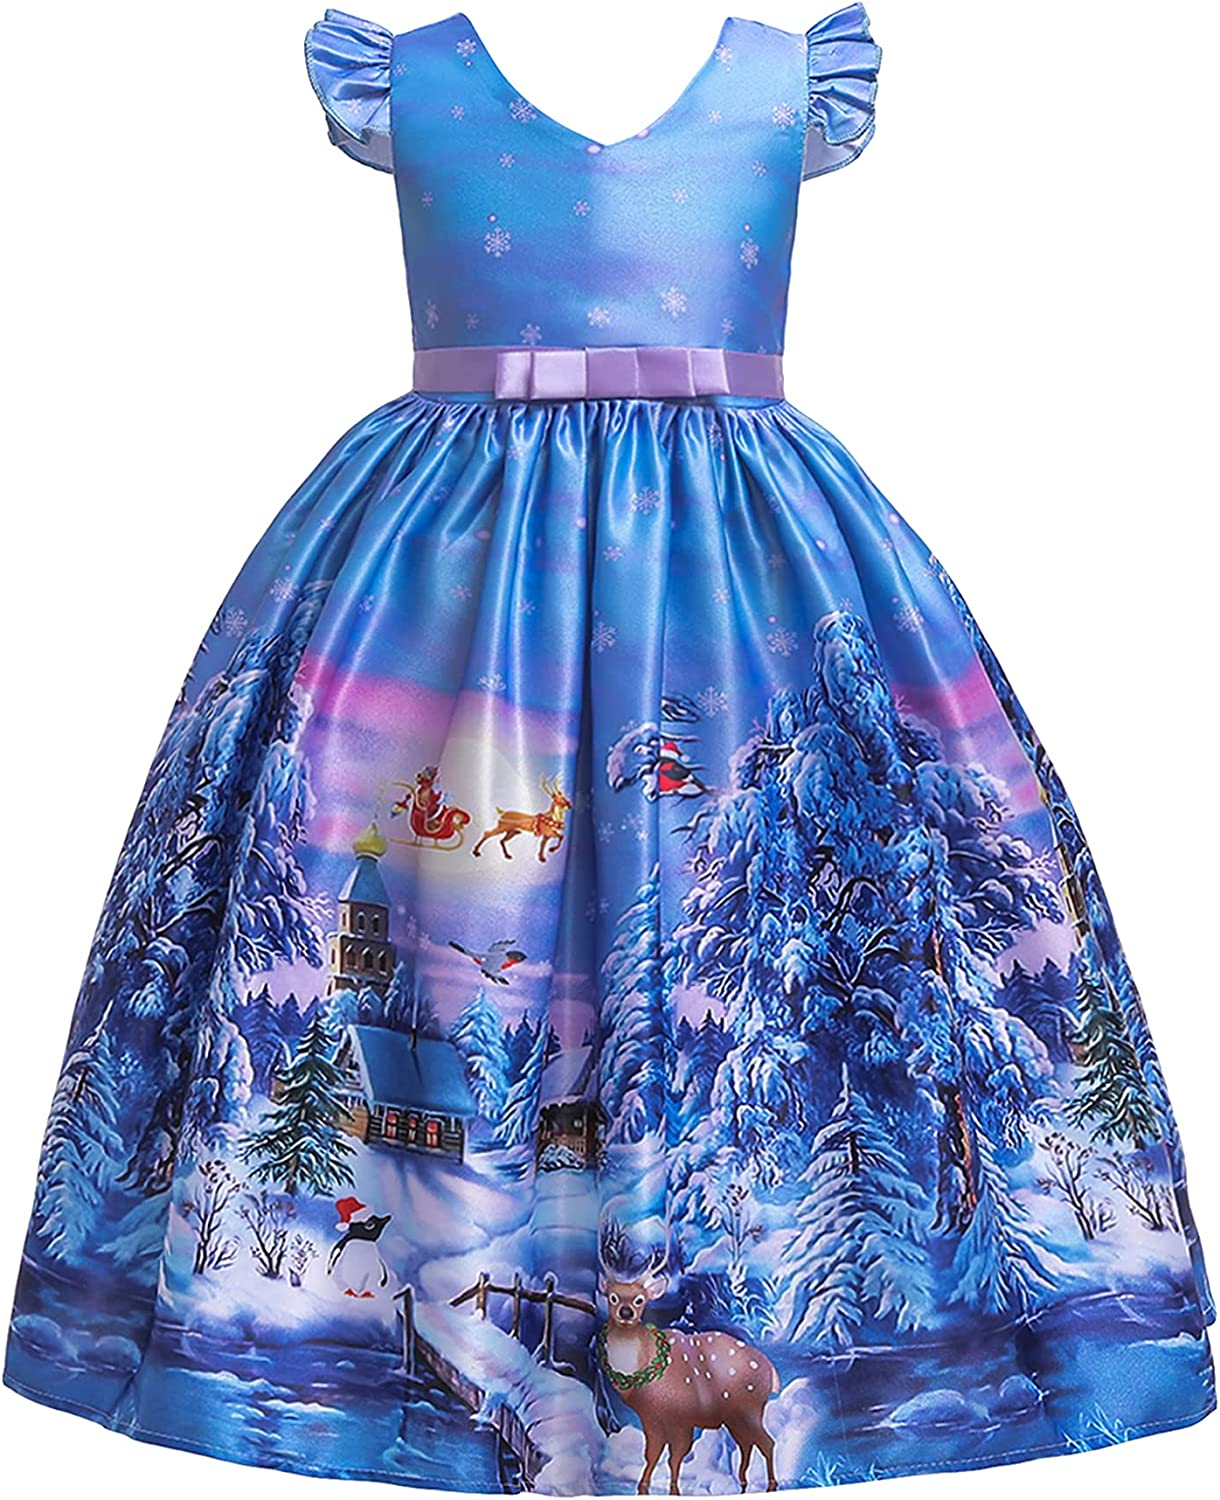 YMING Girls Crew Neck Christmas Party Gown Xmas Santa Pageant Princess Dresses Maxi Gown